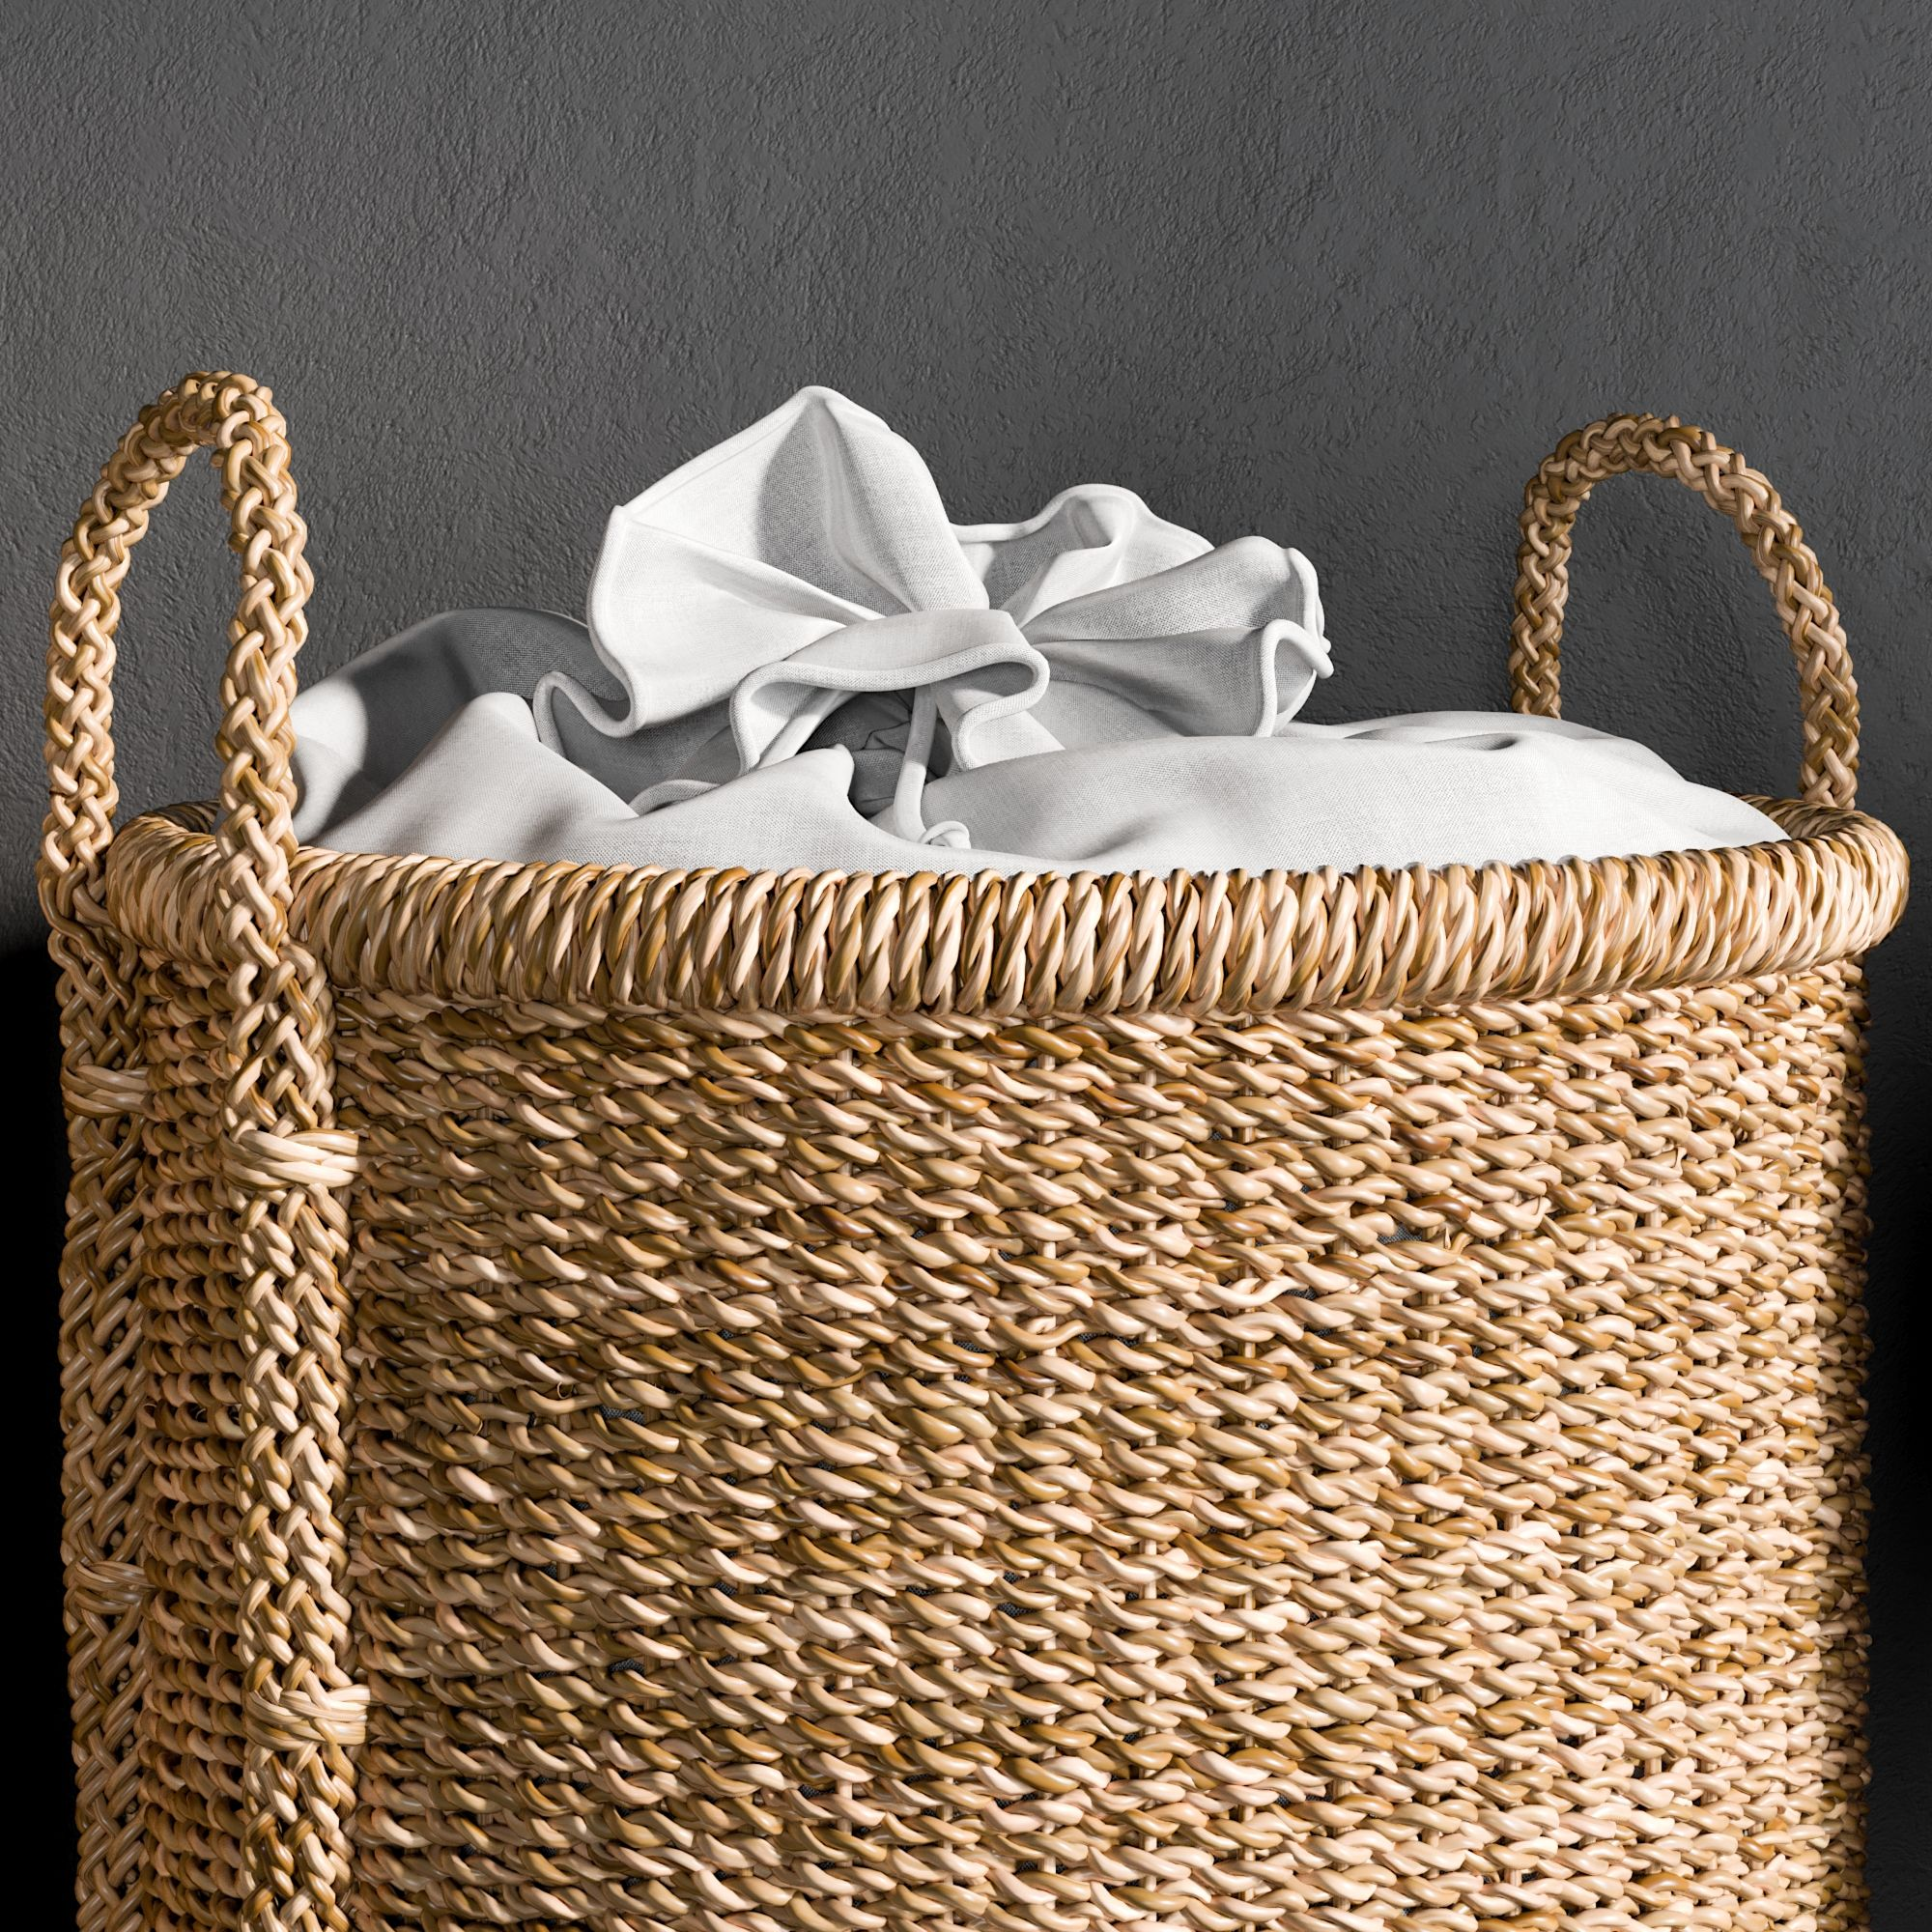 Baskets 4 Baskets Basket Buy Baskets Wicker Laundry Basket